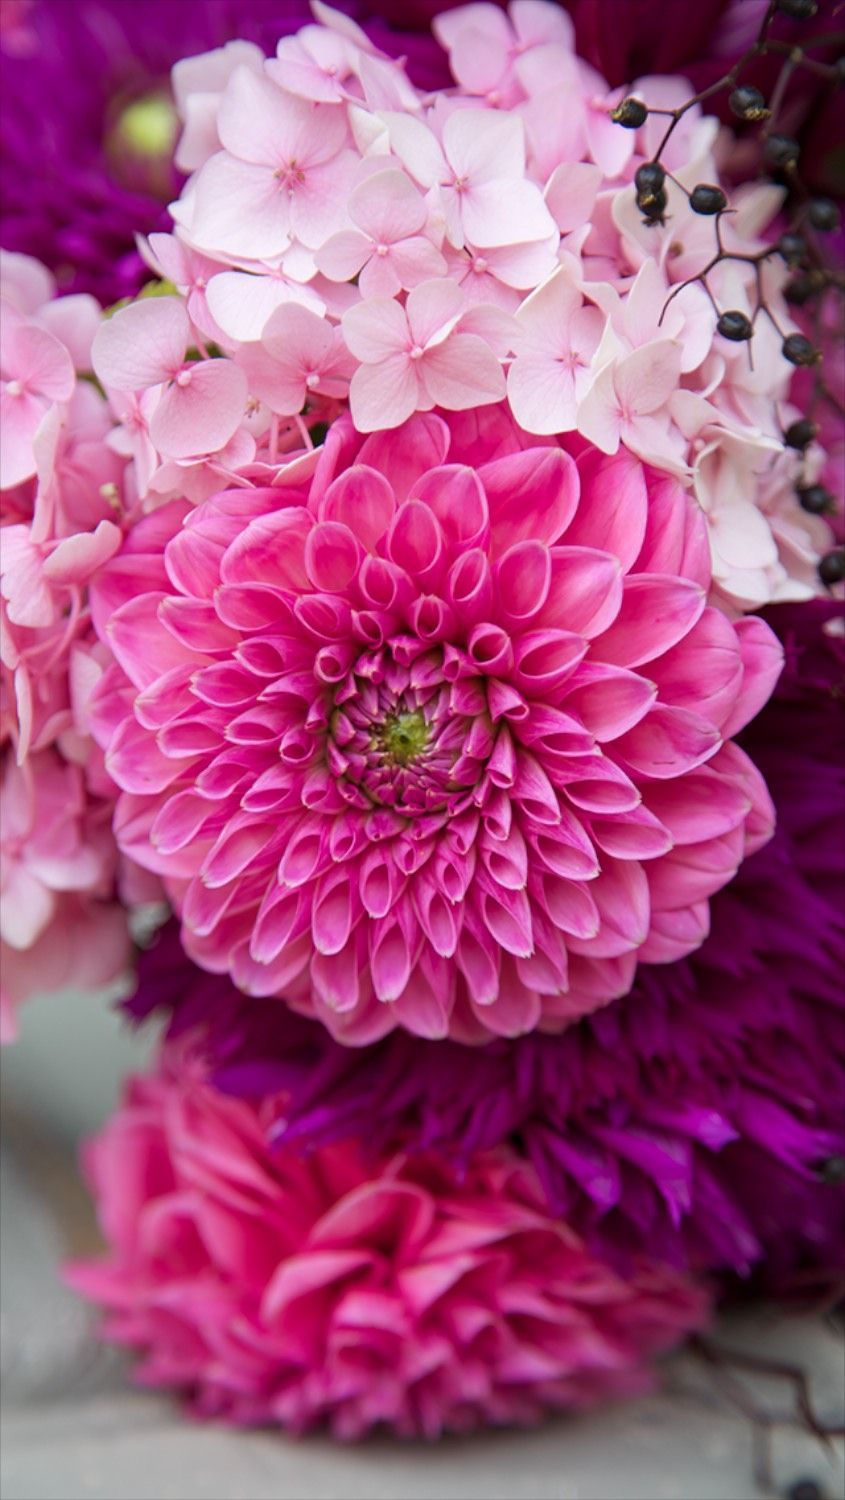 Flower Phone Wallpapers Top Free Flower Phone Backgrounds